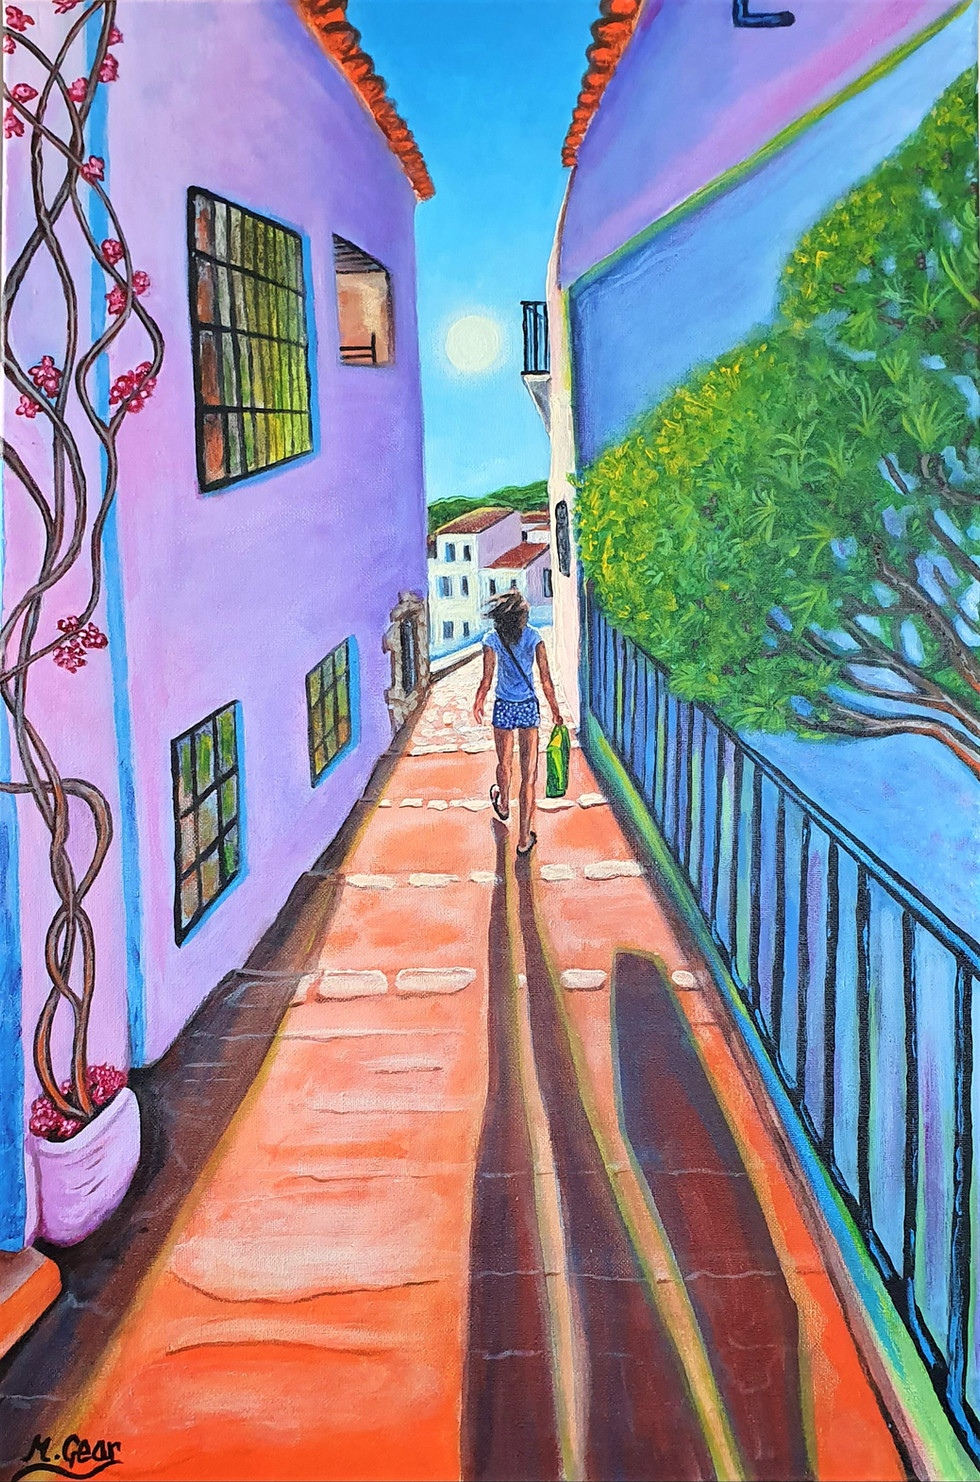 Painting: Shopping in Spain